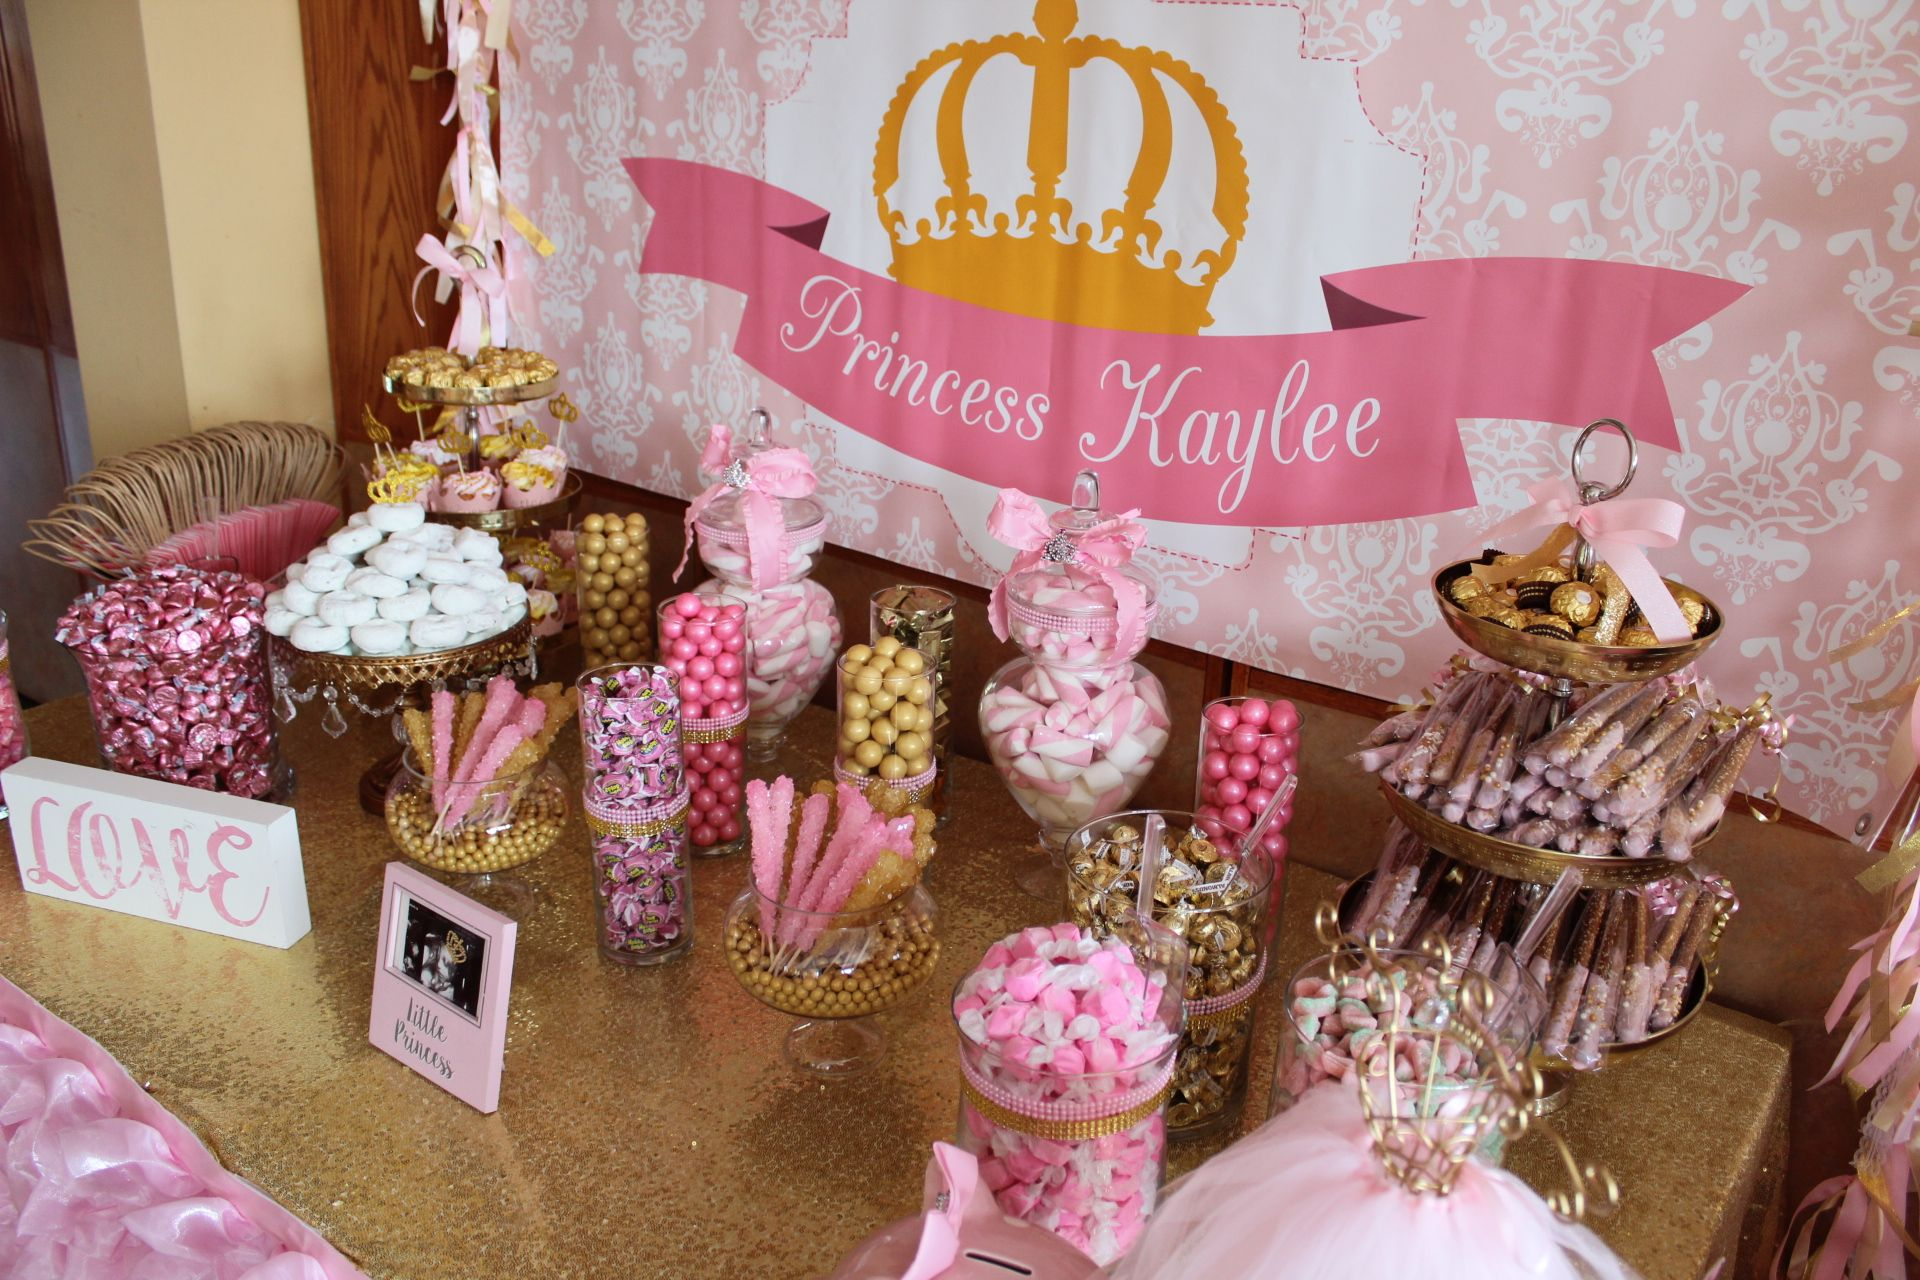 Princess Theme Candy Table Pink Baby Shower Princess Baby Shower Princess Theme Princess Theme